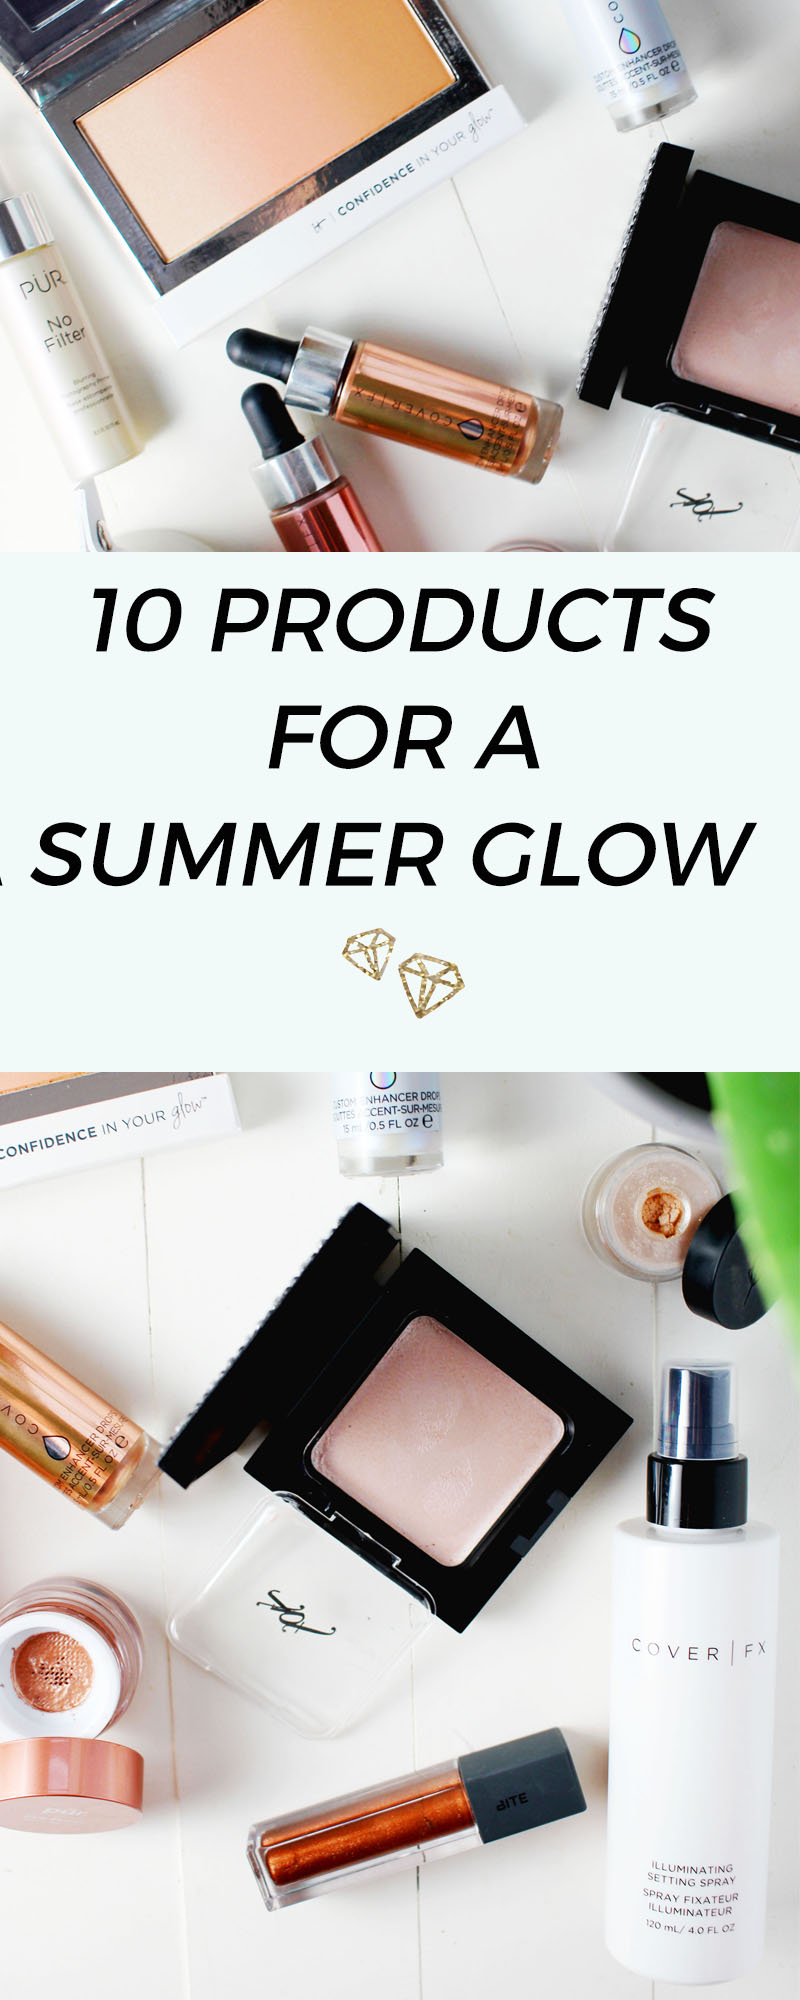 Beauty products that give a summer glow with highlighting and illumination qualities